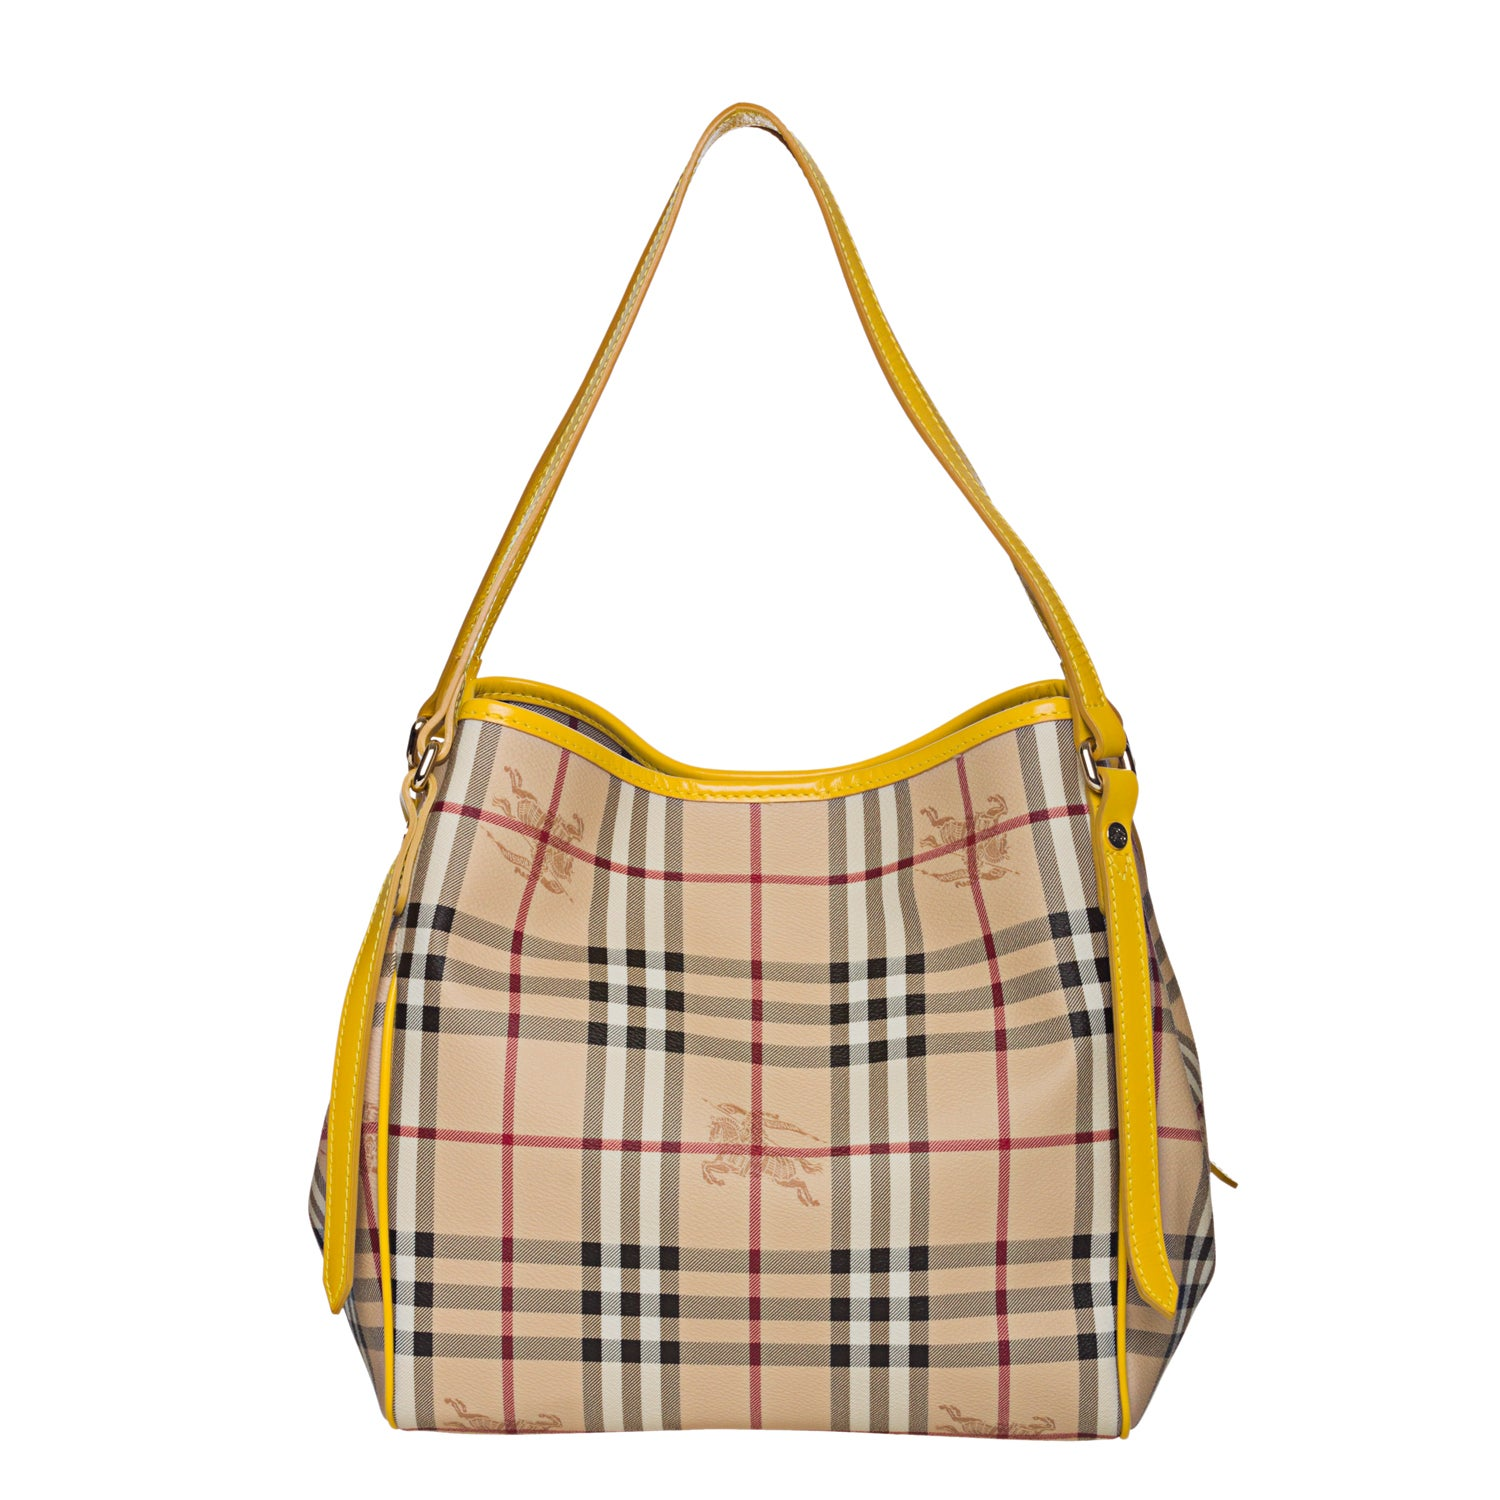 86baadfa231 ... Burberry 3799320 Small Haymarket Yellow Leather Trim Tote Bag  competitive price f1352 5e18c ...